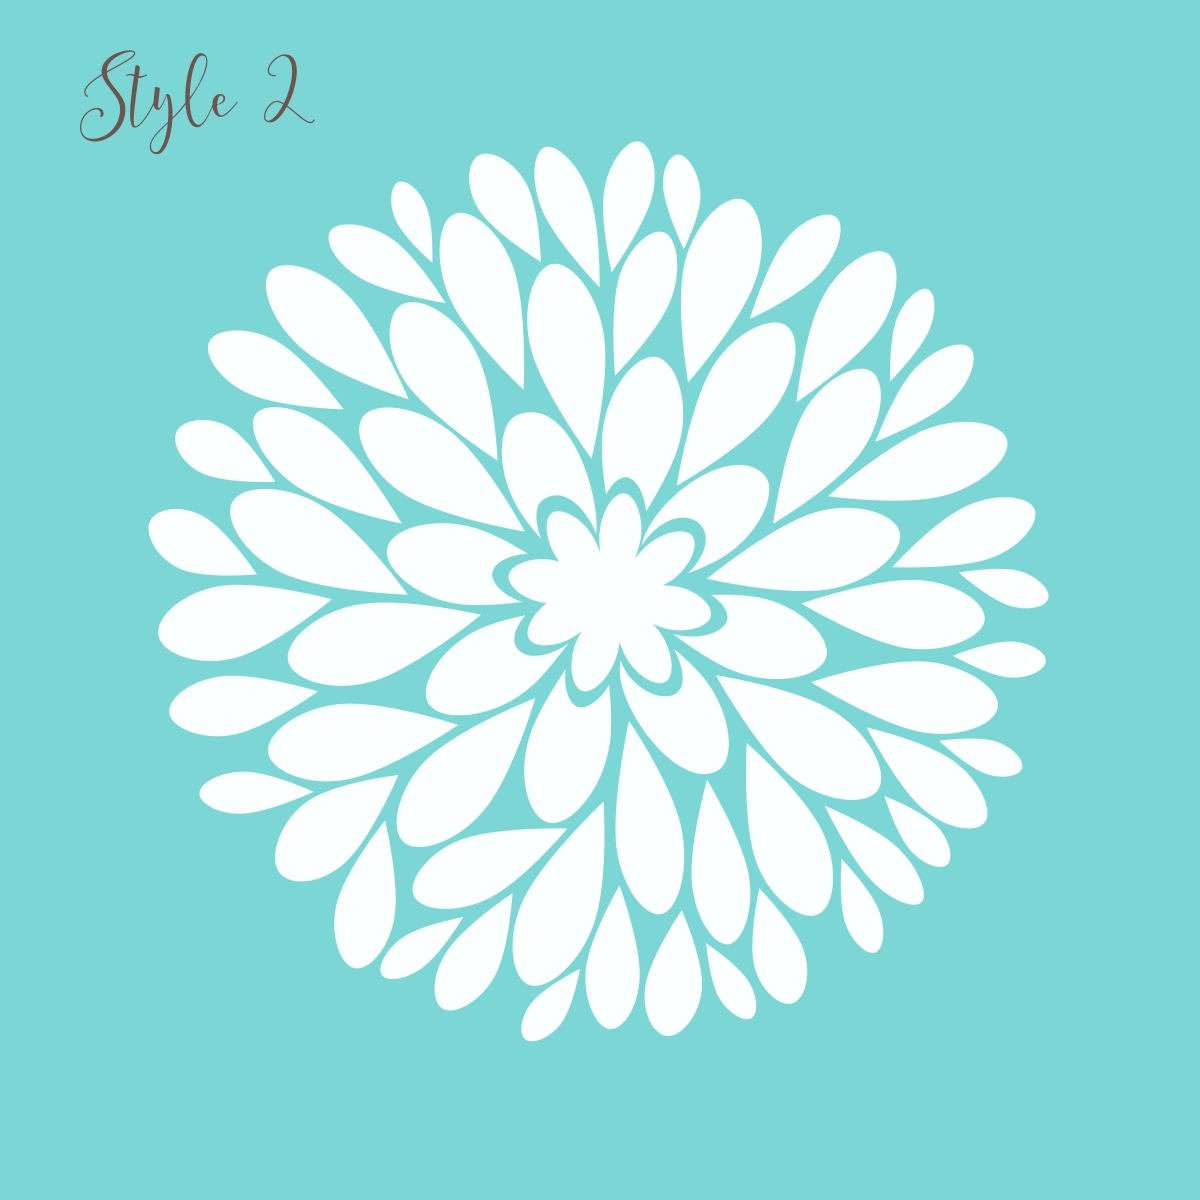 Single Dahlia Flower Vinyl Decal | Big Dahlia Flower Wall Decal